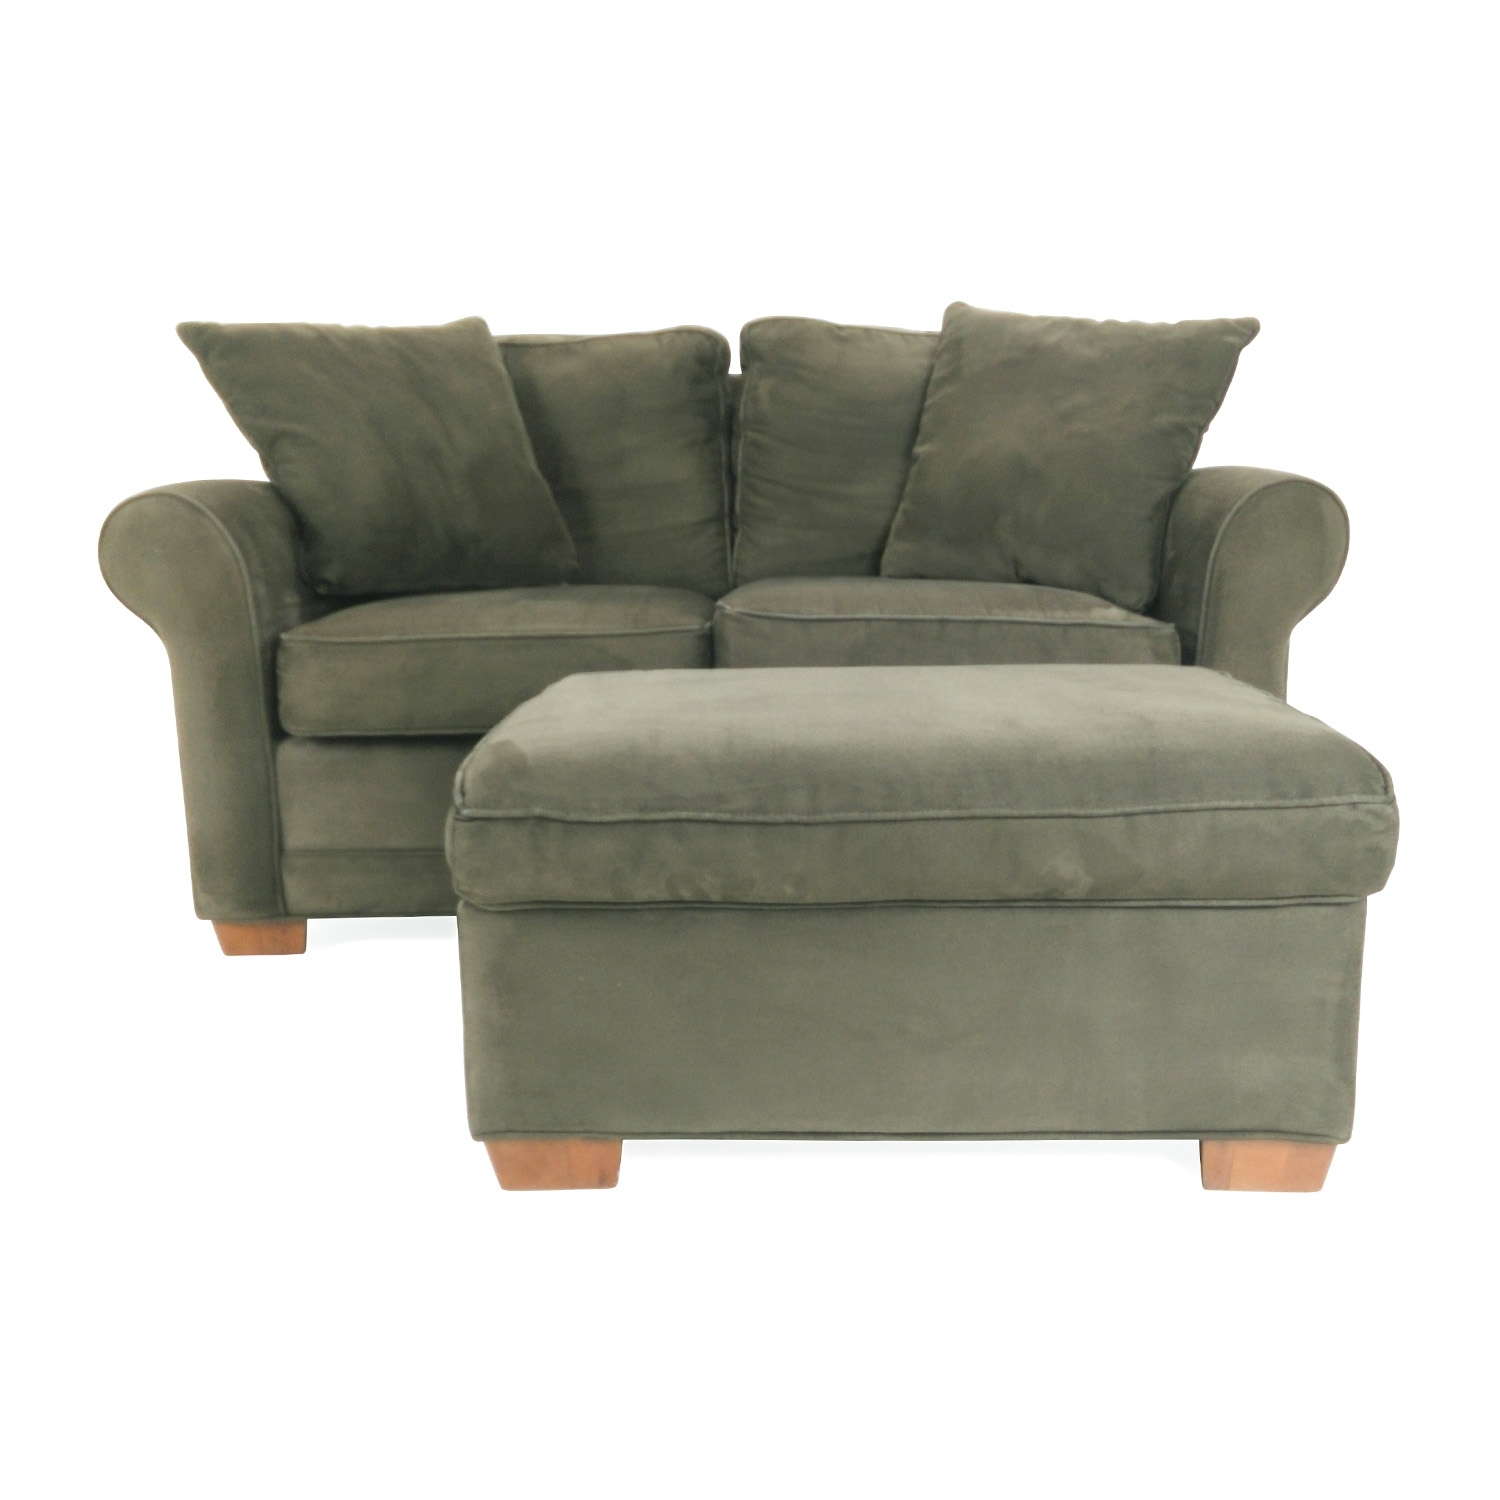 78% Off – Raymour And Flanigan Raymour And Flanigan Love Seat And Intended For Loveseats With Ottoman (View 1 of 10)